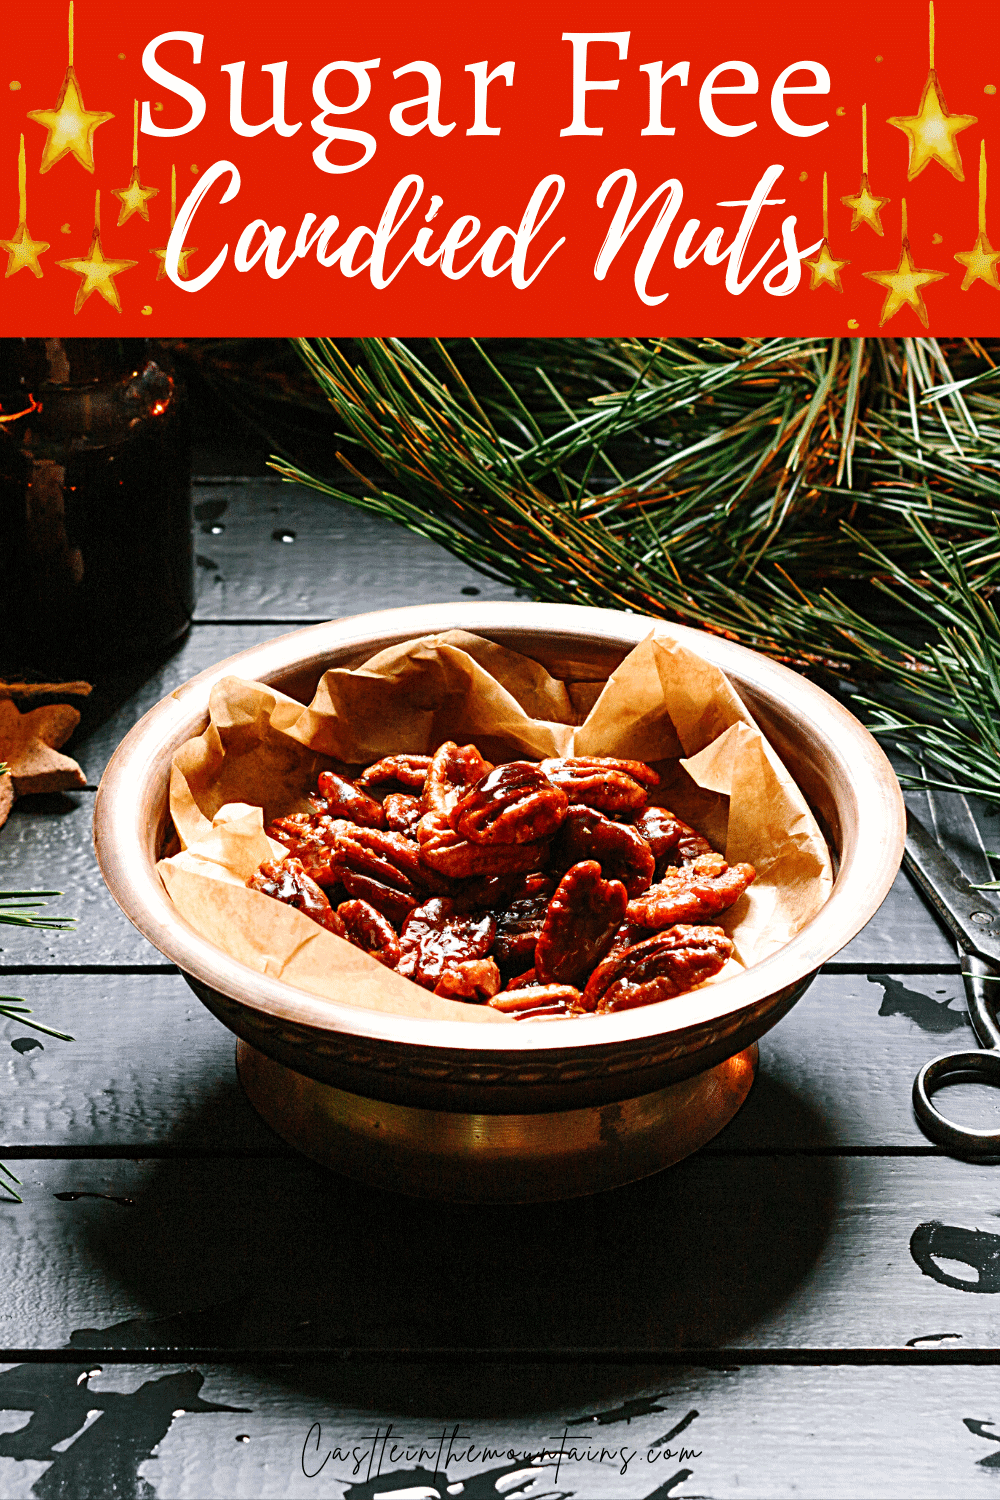 Candied Nuts - How to Make Low Carb Candied Nuts